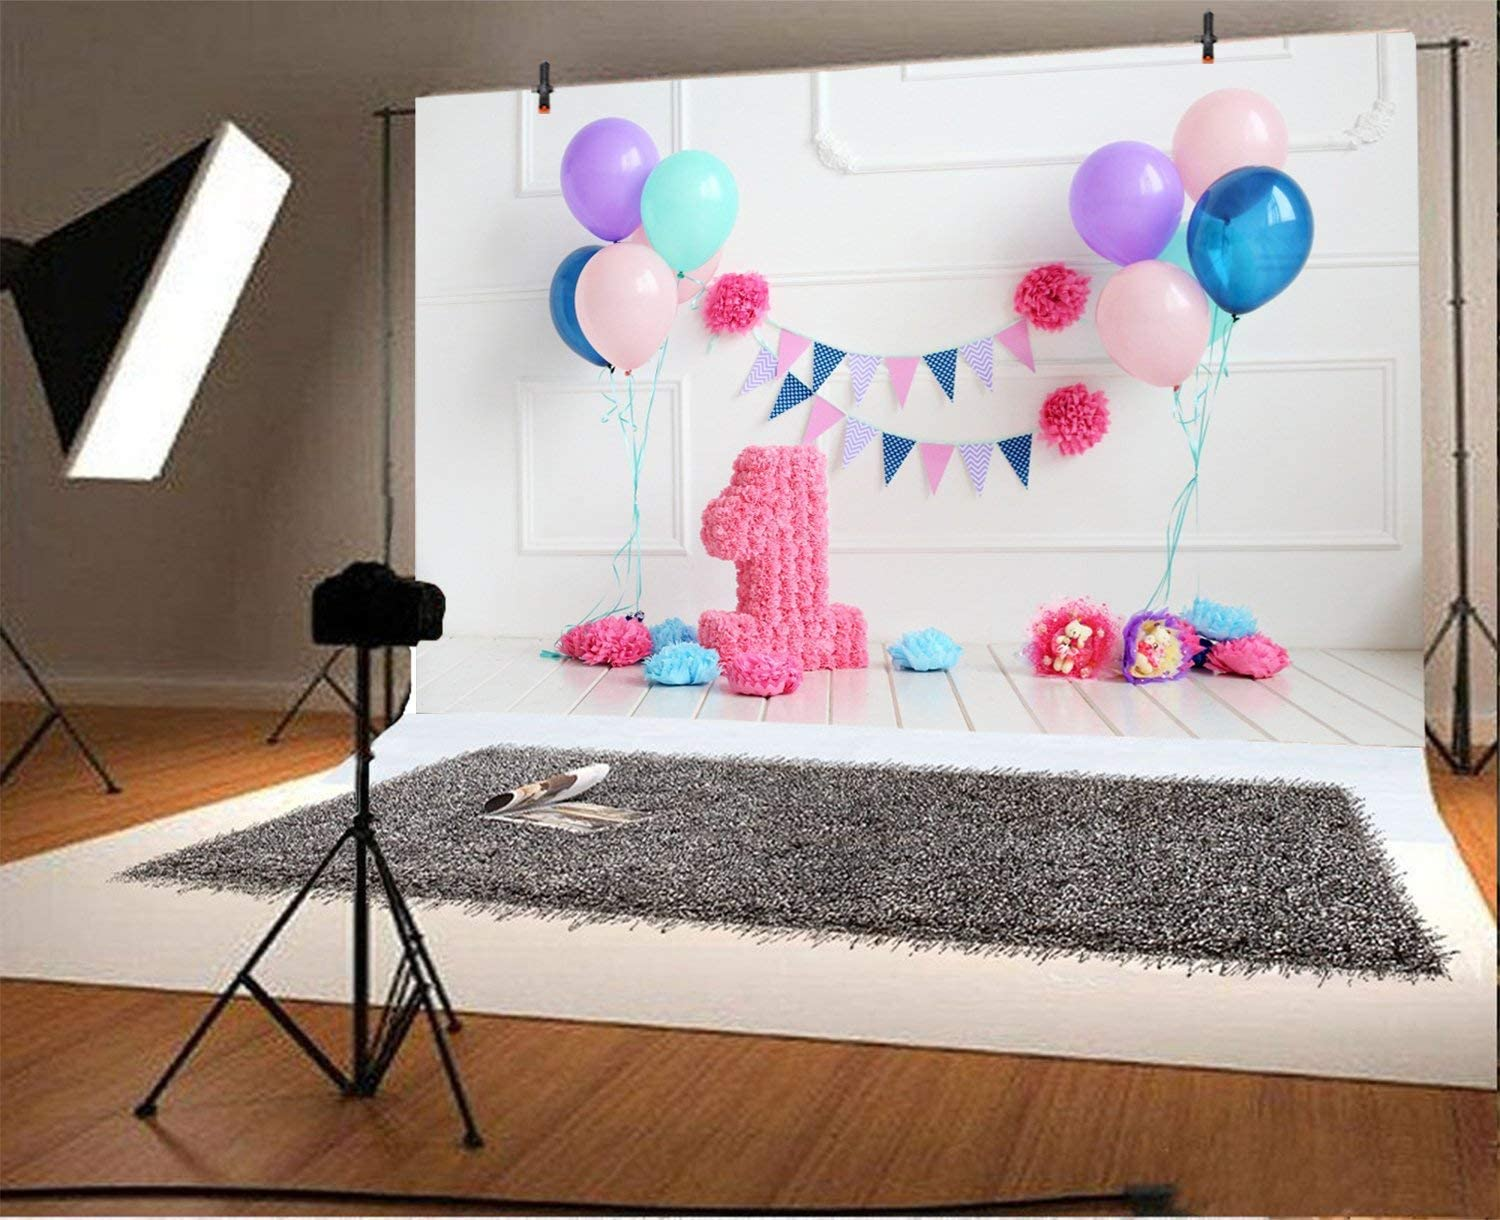 15x10ft Baby Girl First Birthday Party Backdrop Beautiful Babyroom Decor Balloons Haning Lighting Strings Fireplace Cake Smash Background for Photography Photo Studio Props